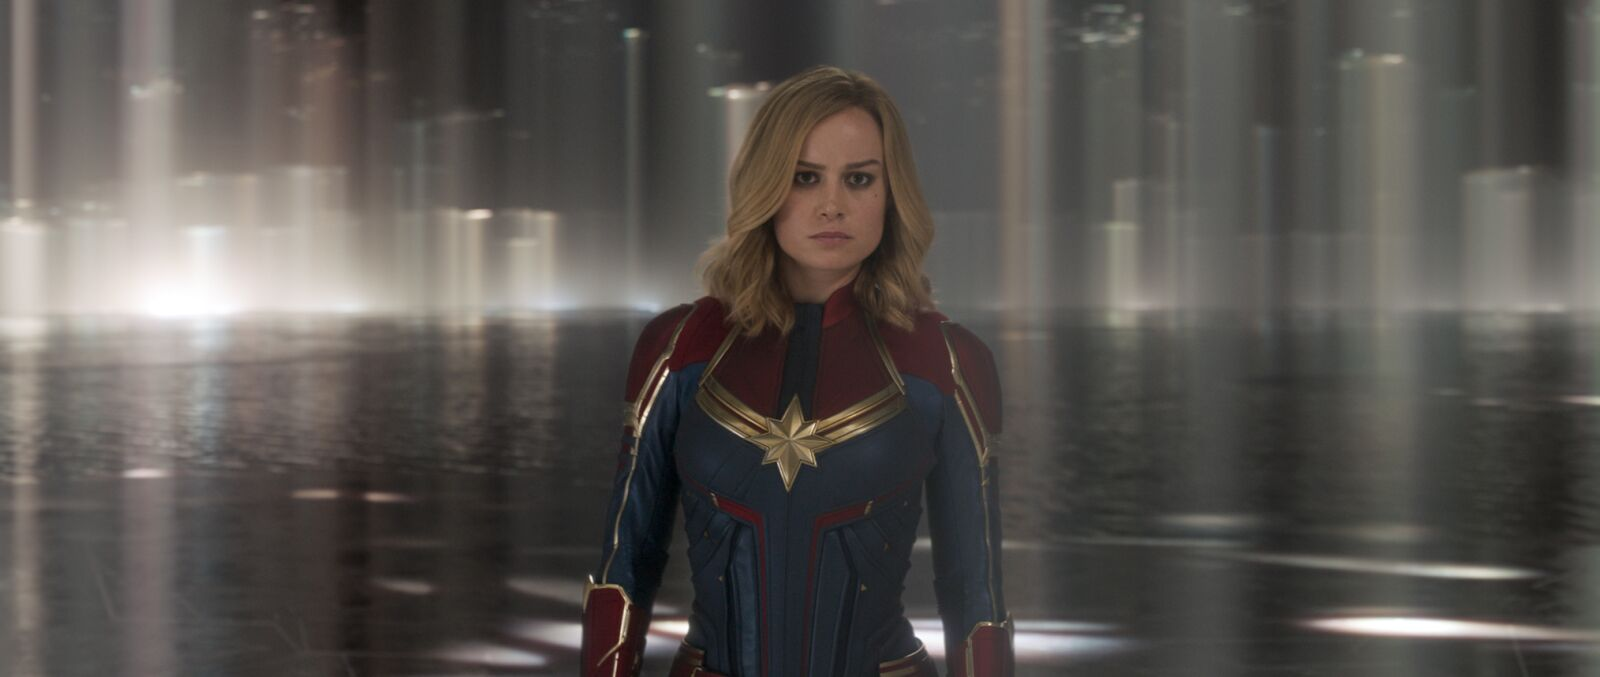 Could an all-female Marvel movie be on the horizon?